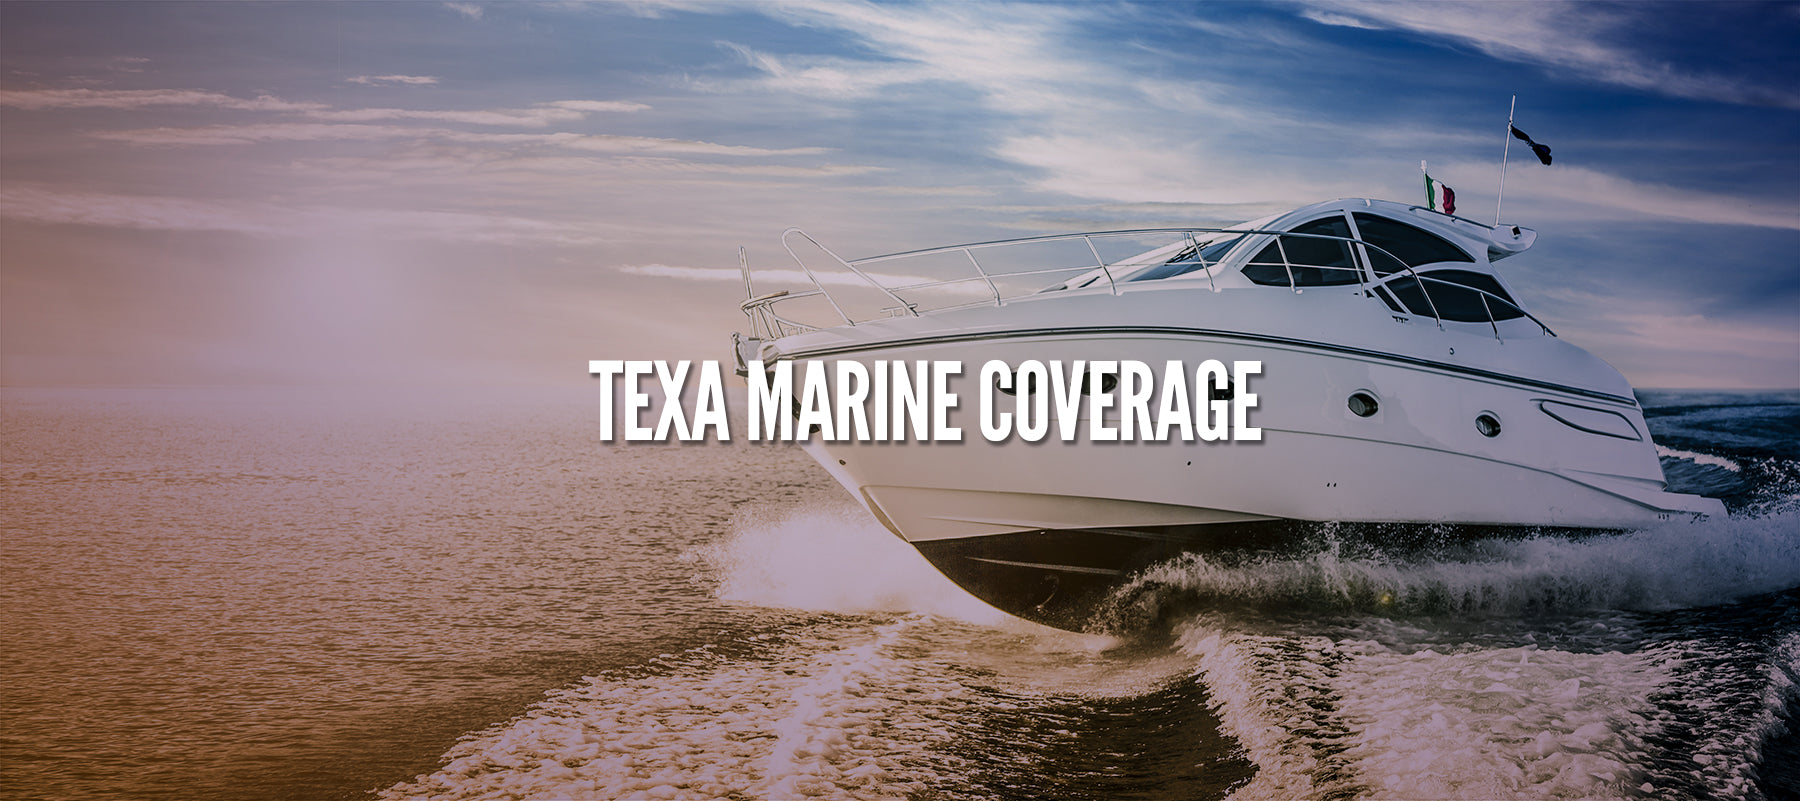 TEXA Marine Manufacturer Coverage Guide